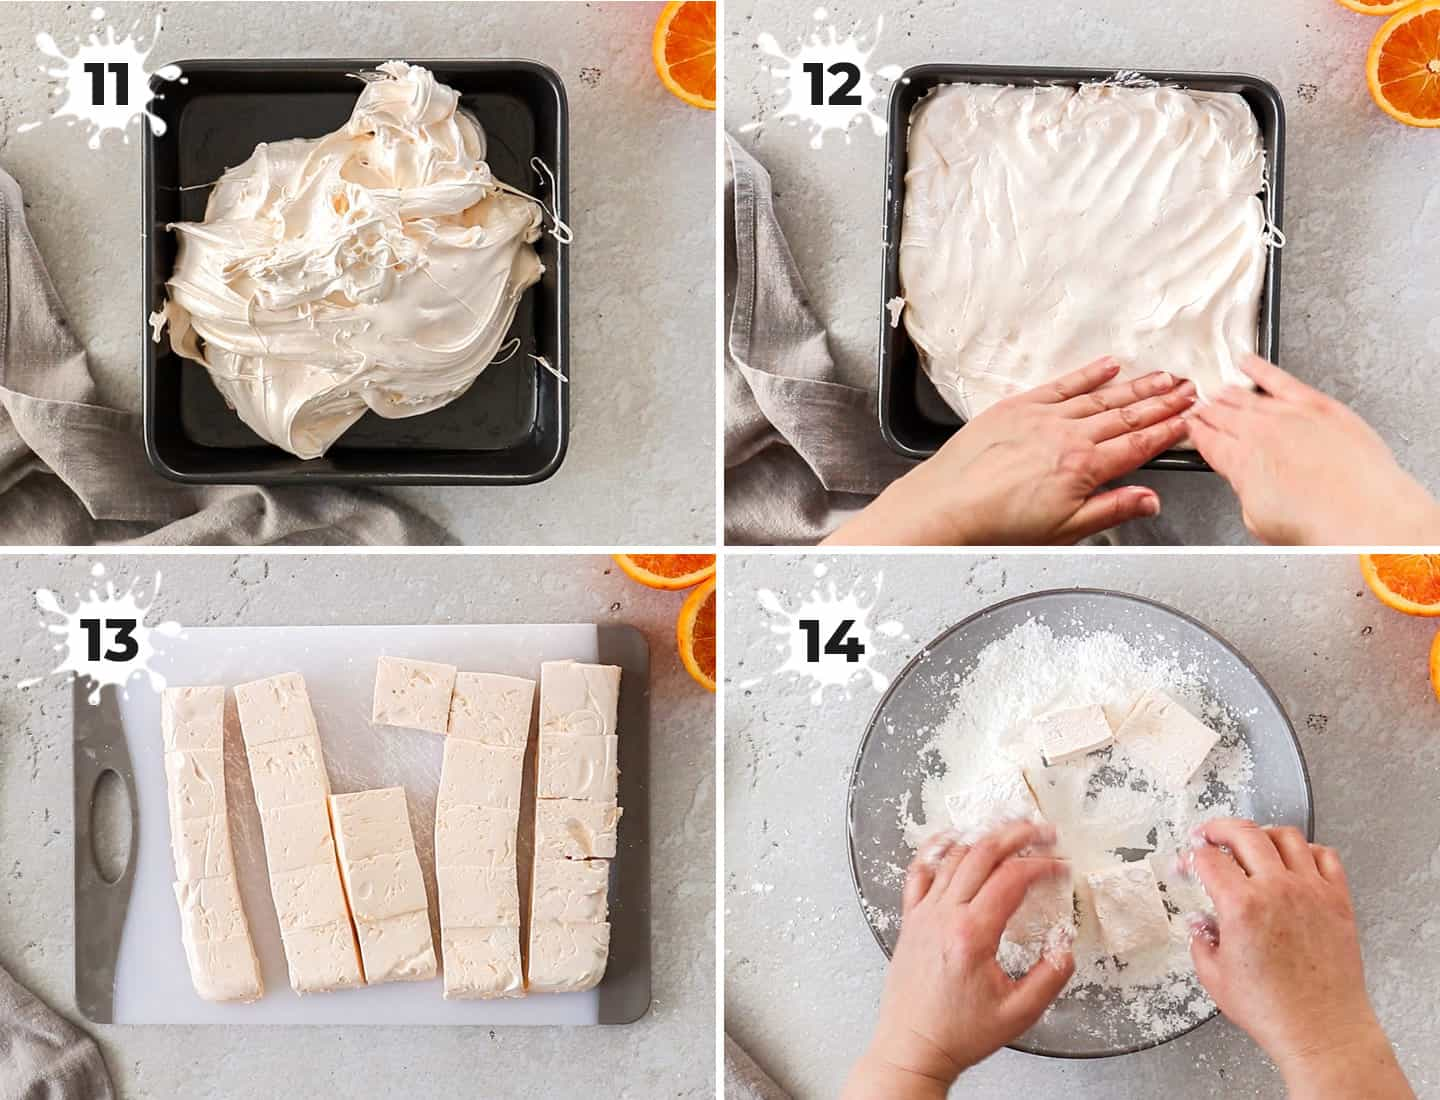 A collage of 4 images showing how to set and finish the marshmallows.